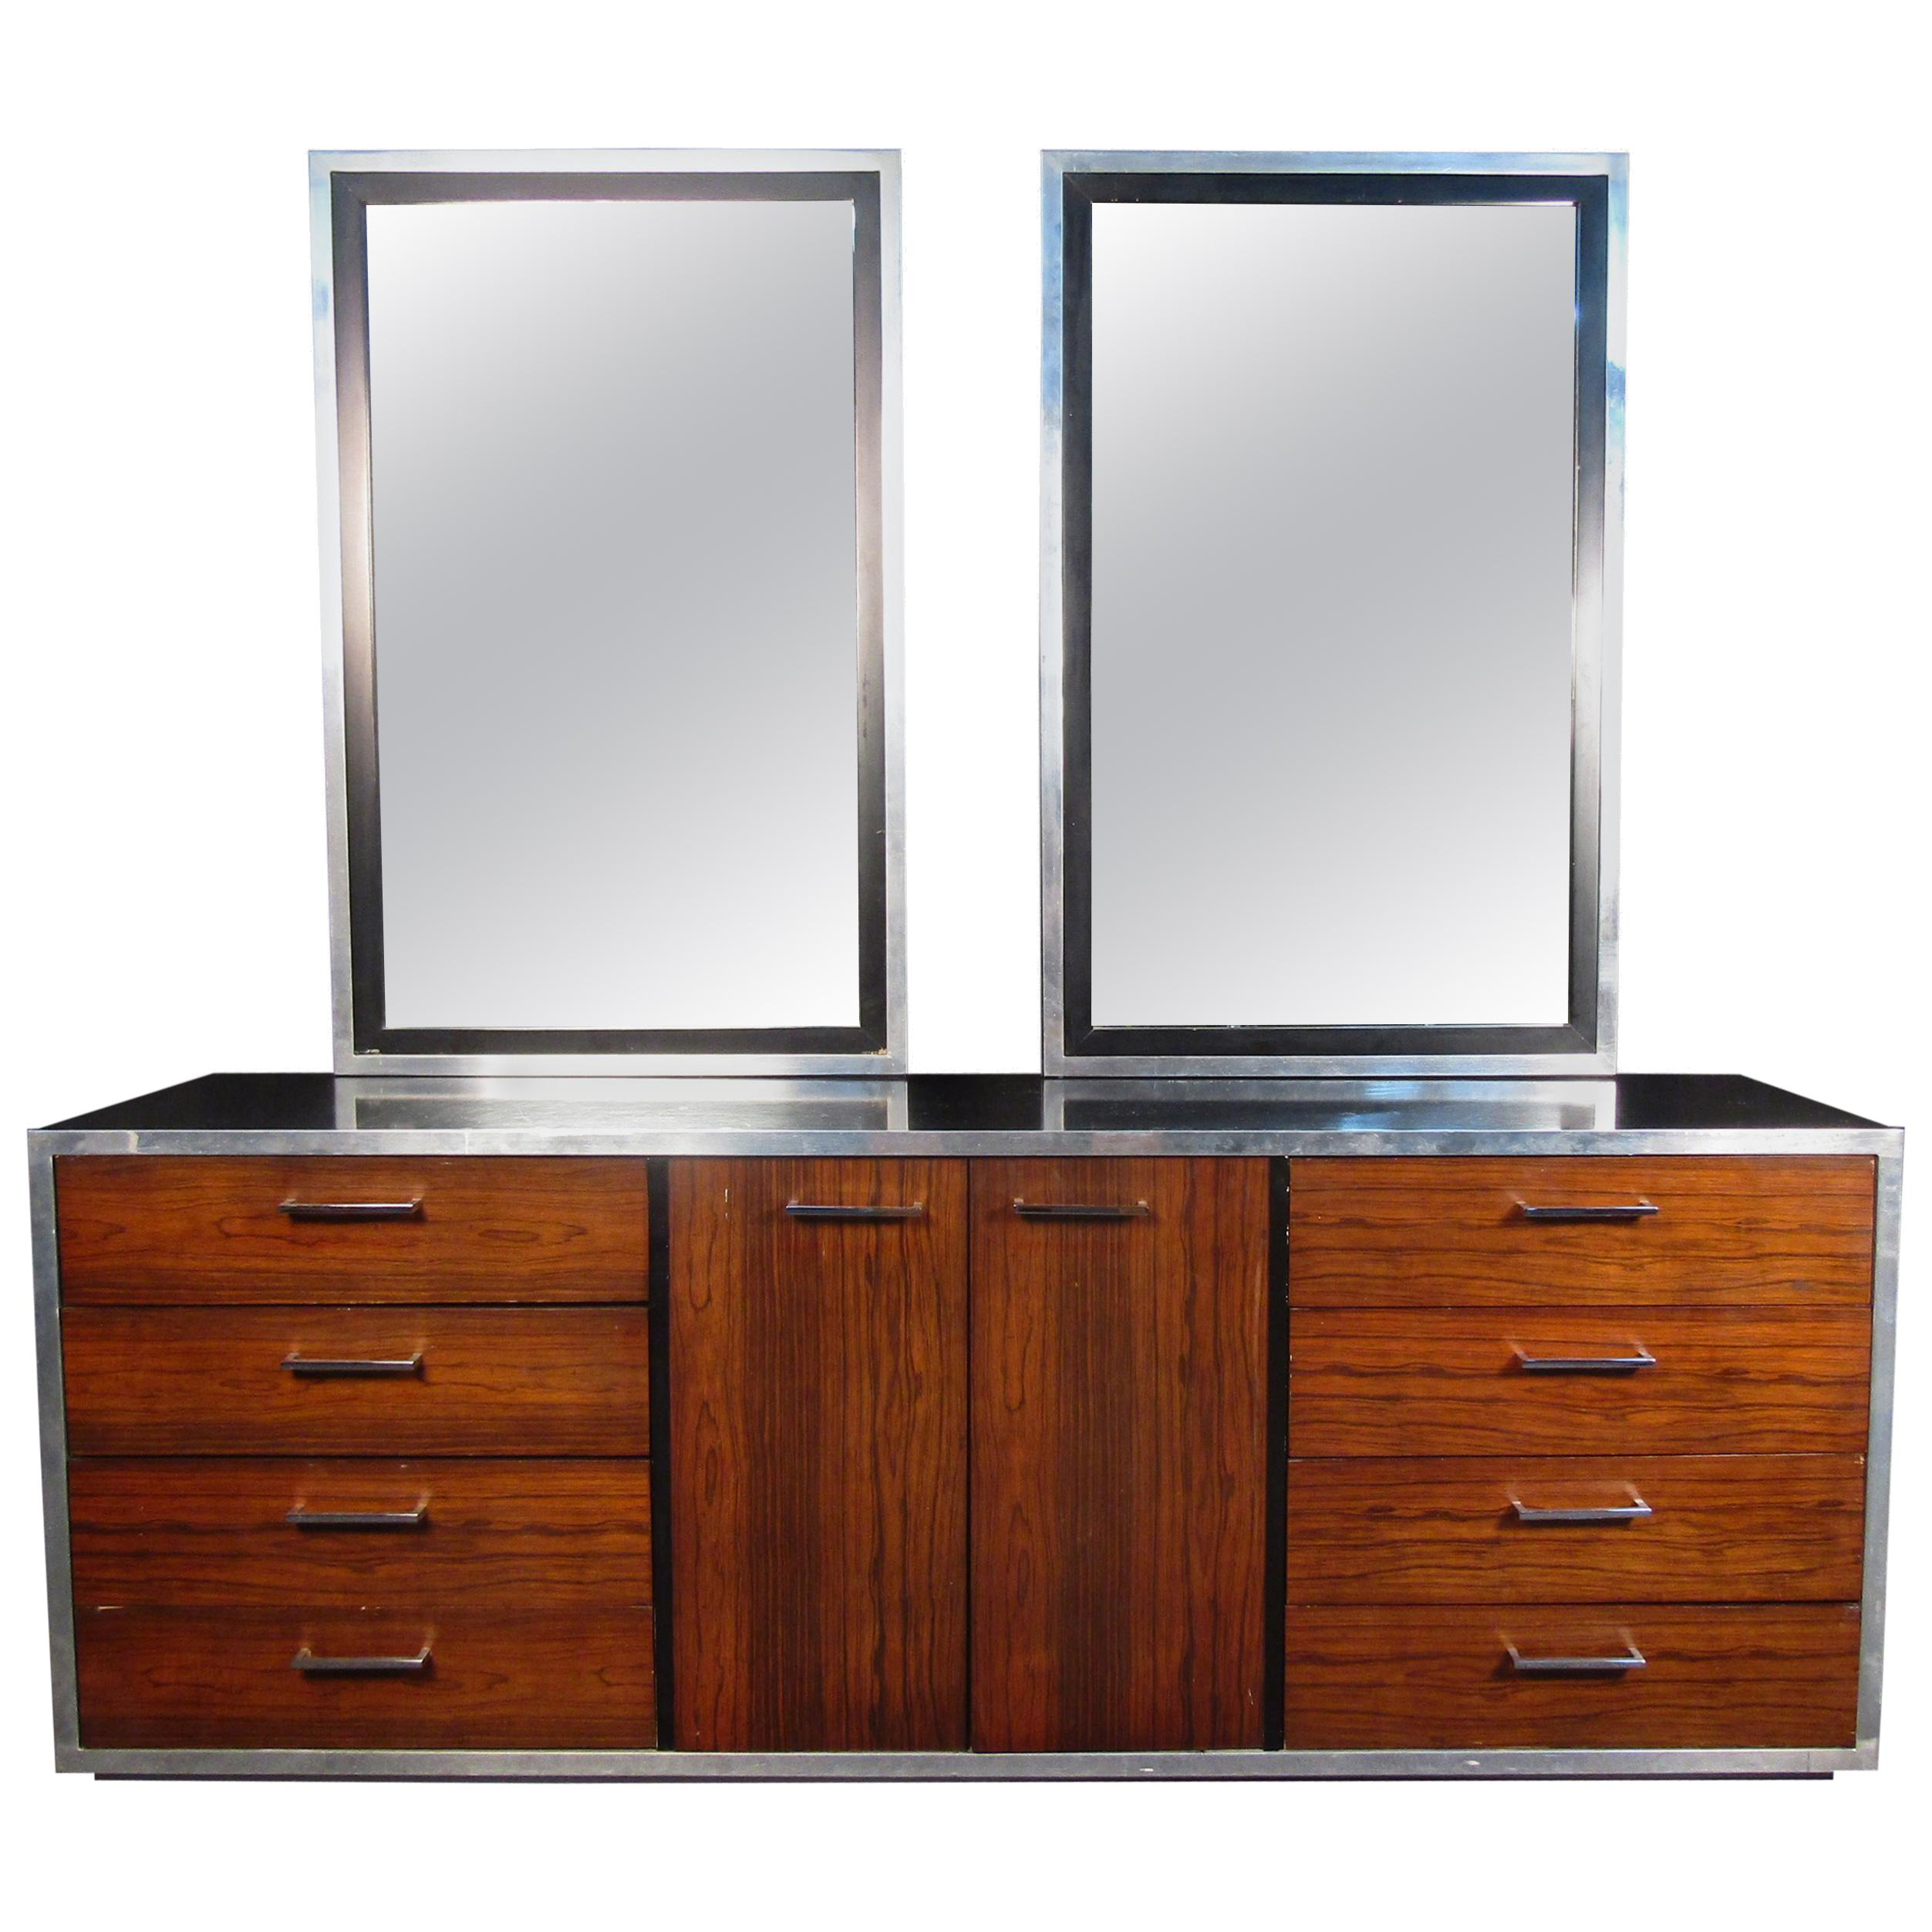 Mid-Century Modern Dresser with Two Mirrors